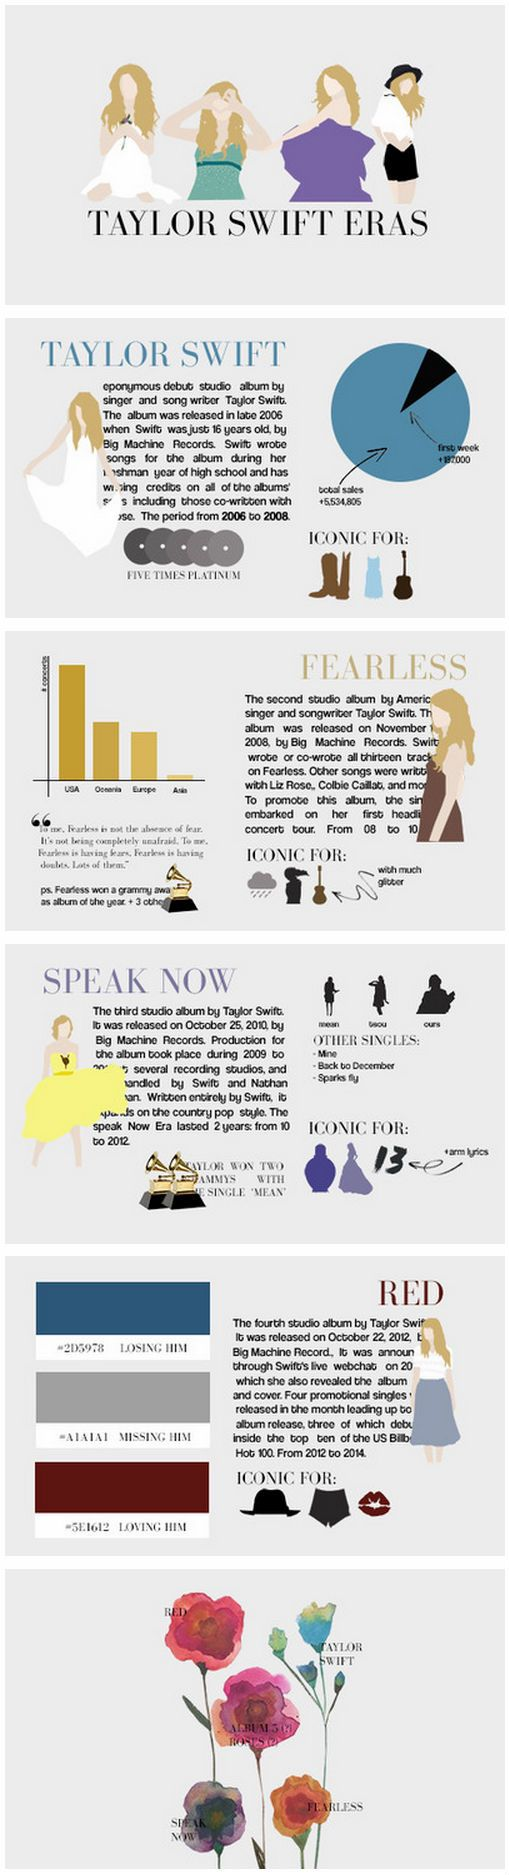 Taylor Swift: an infographic. This is such a cool representation of her career so far!